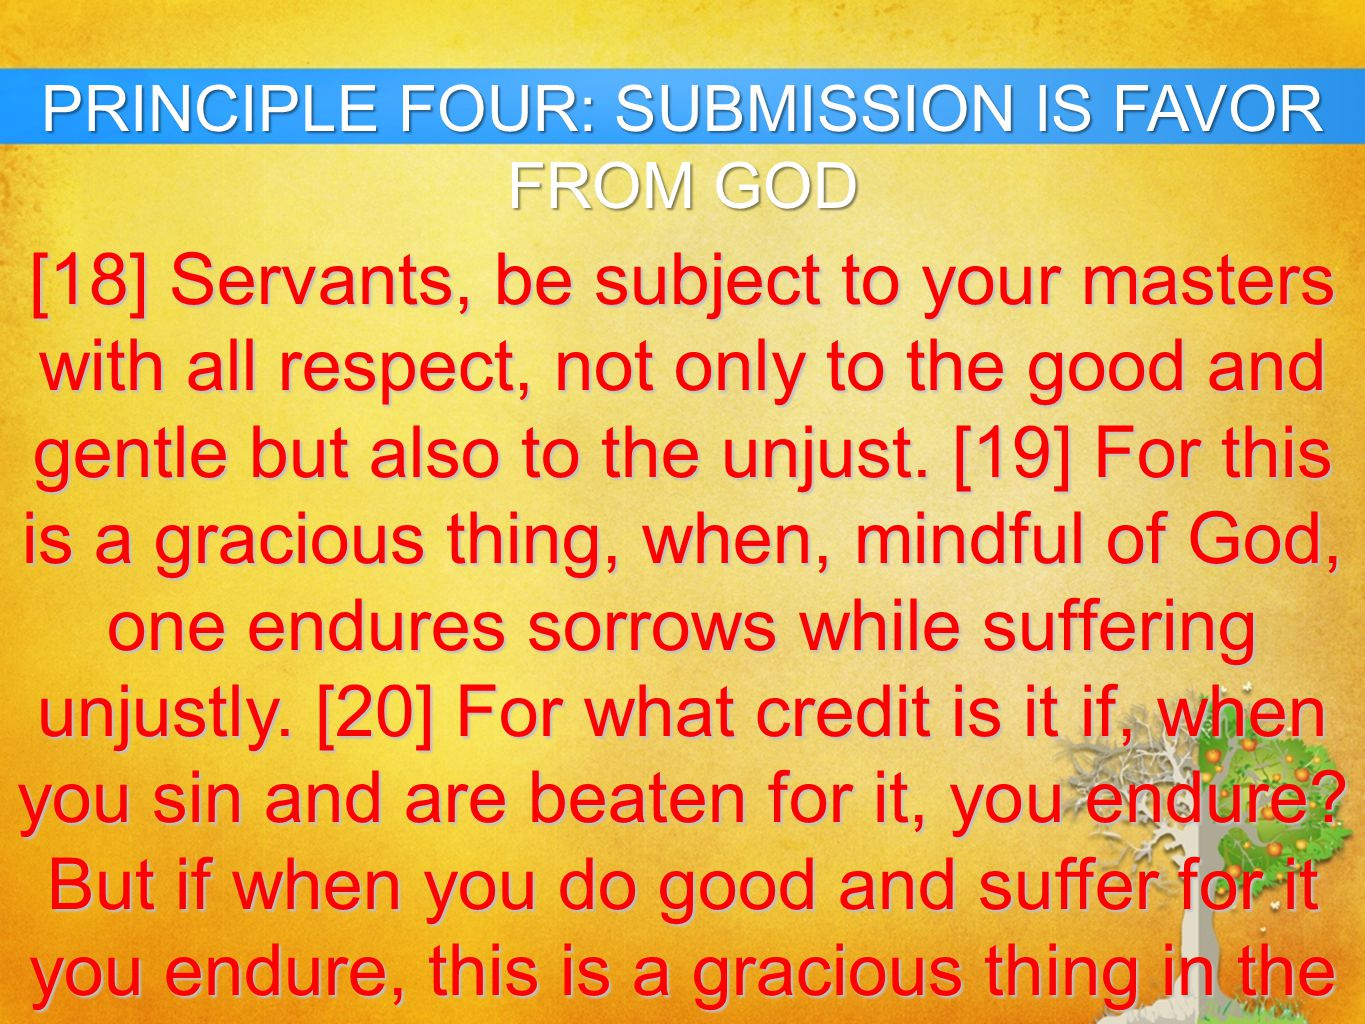 PRINCIPLE FOUR: SUBMISSION IS FAVOR FROM GOD